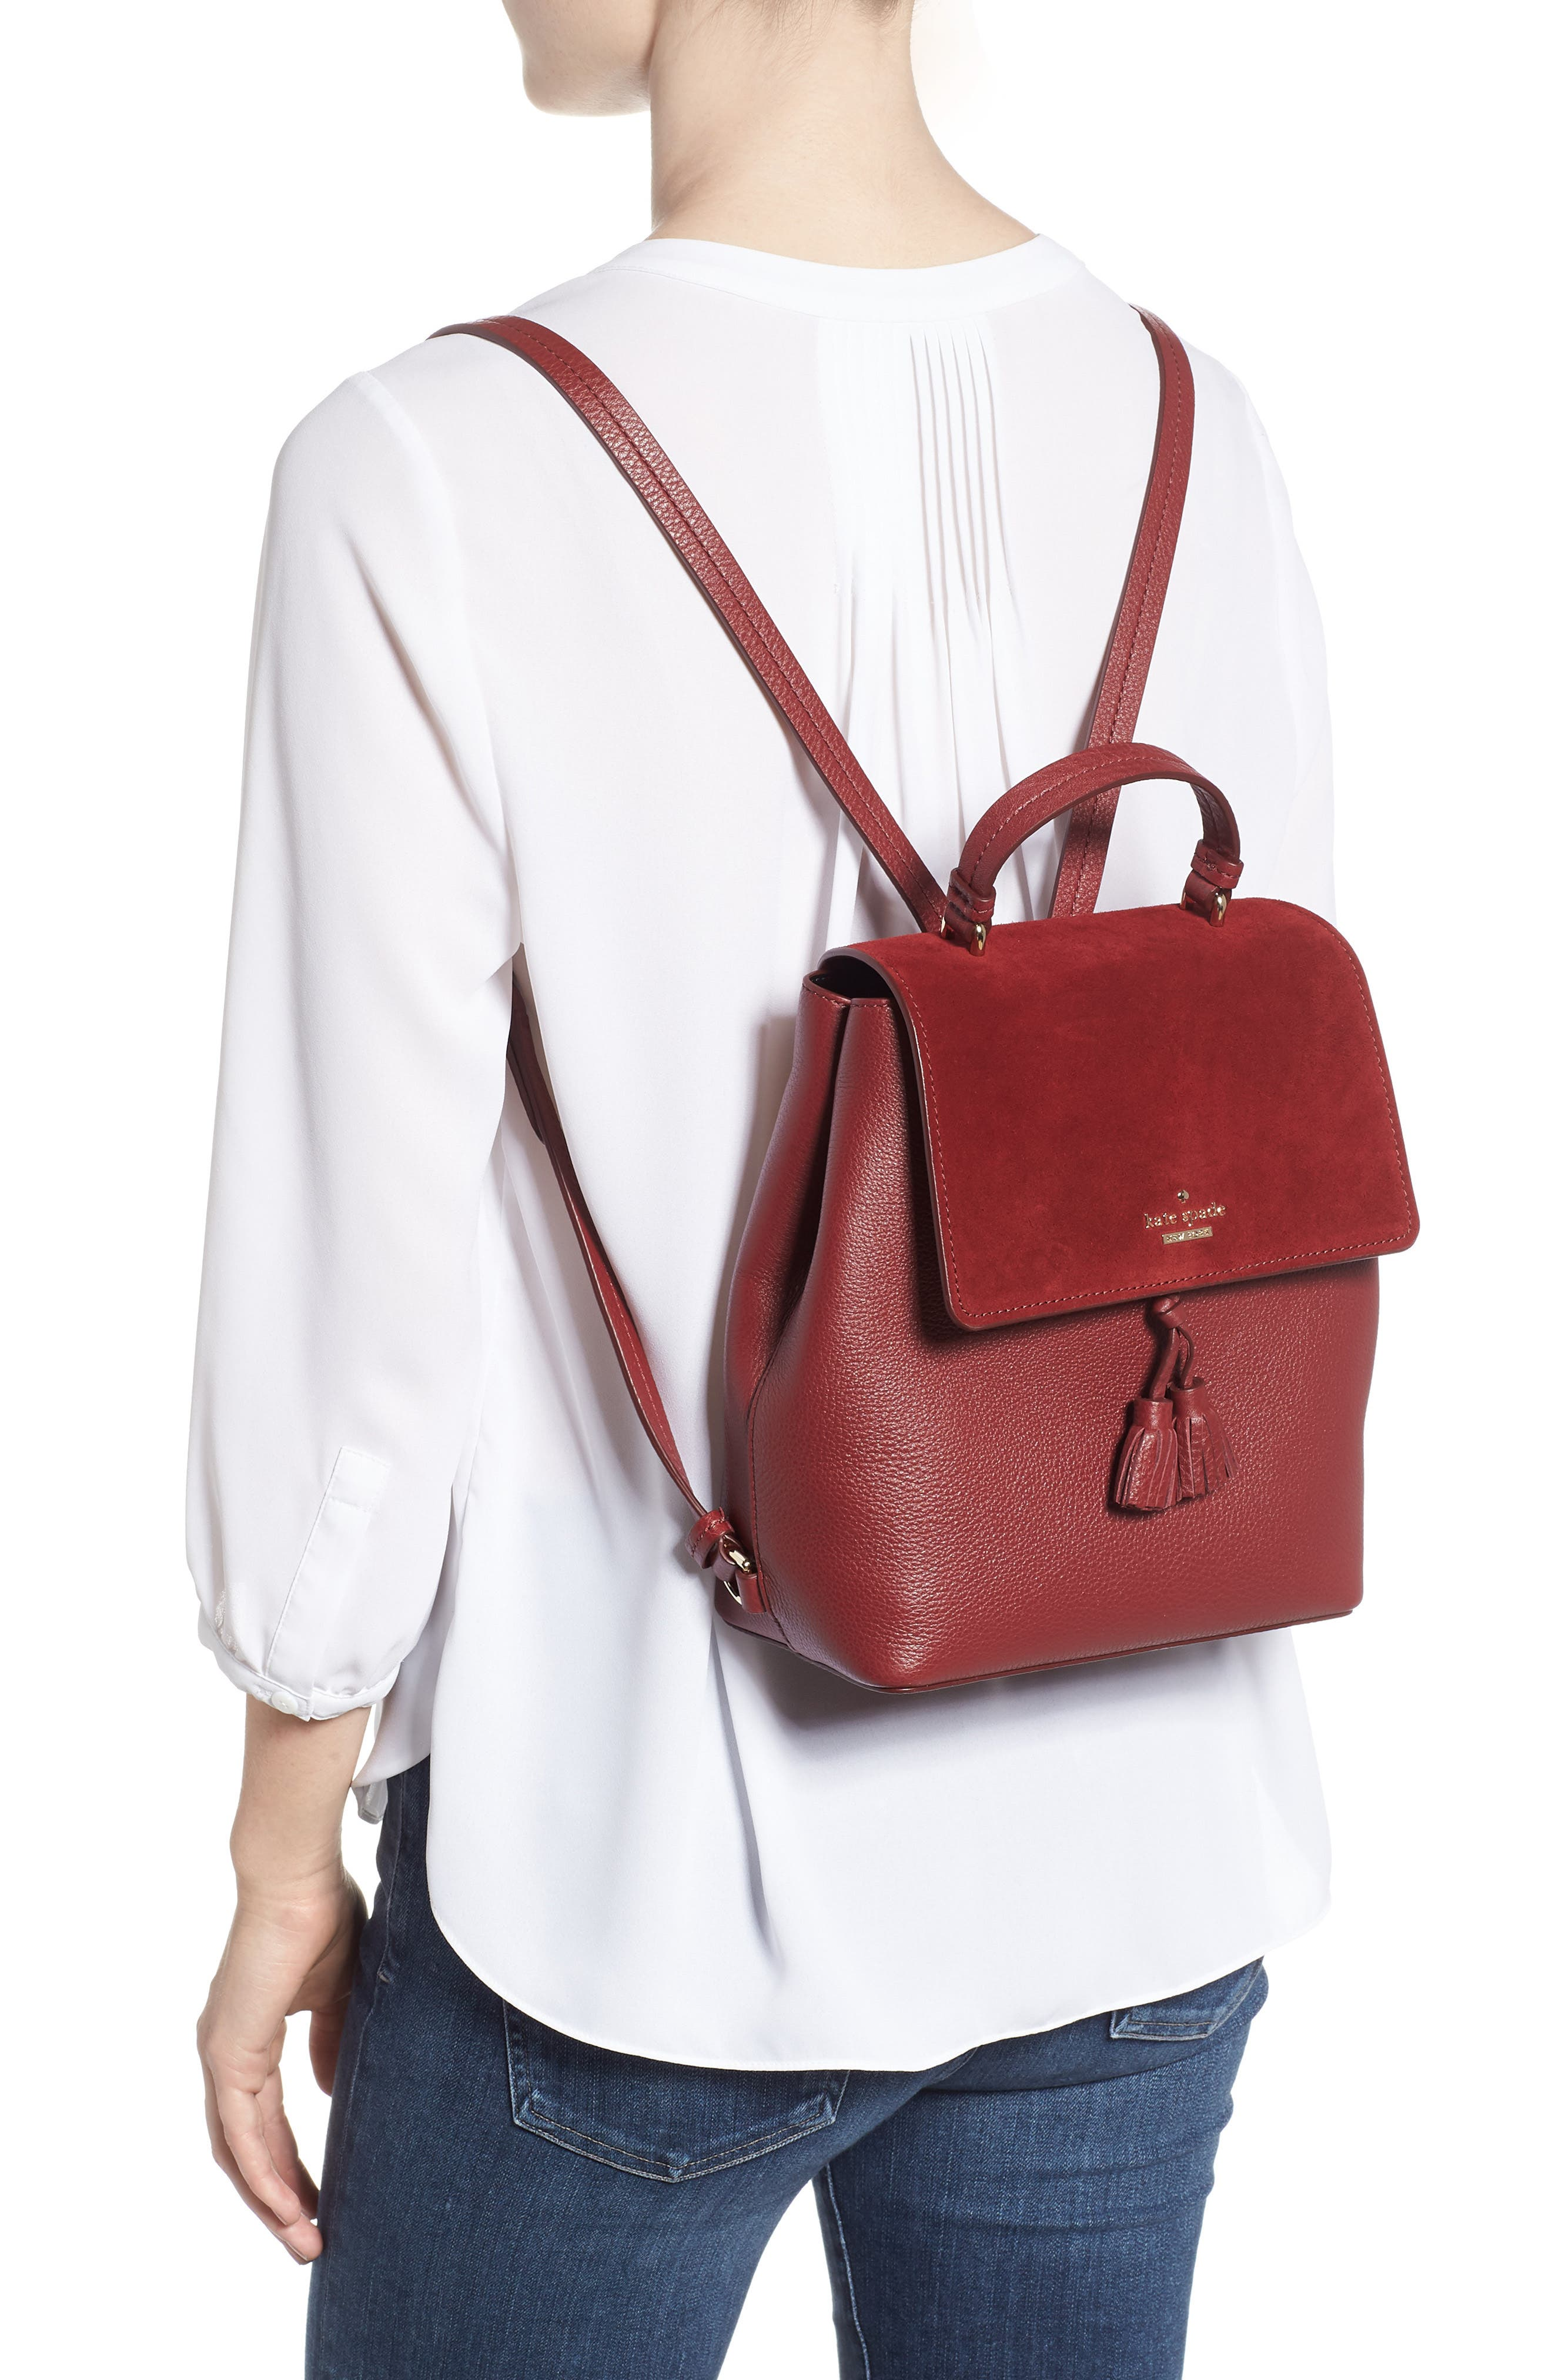 KATE SPADE NEW YORK,                             hayes street - teba leather & suede backpack,                             Alternate thumbnail 2, color,                             600